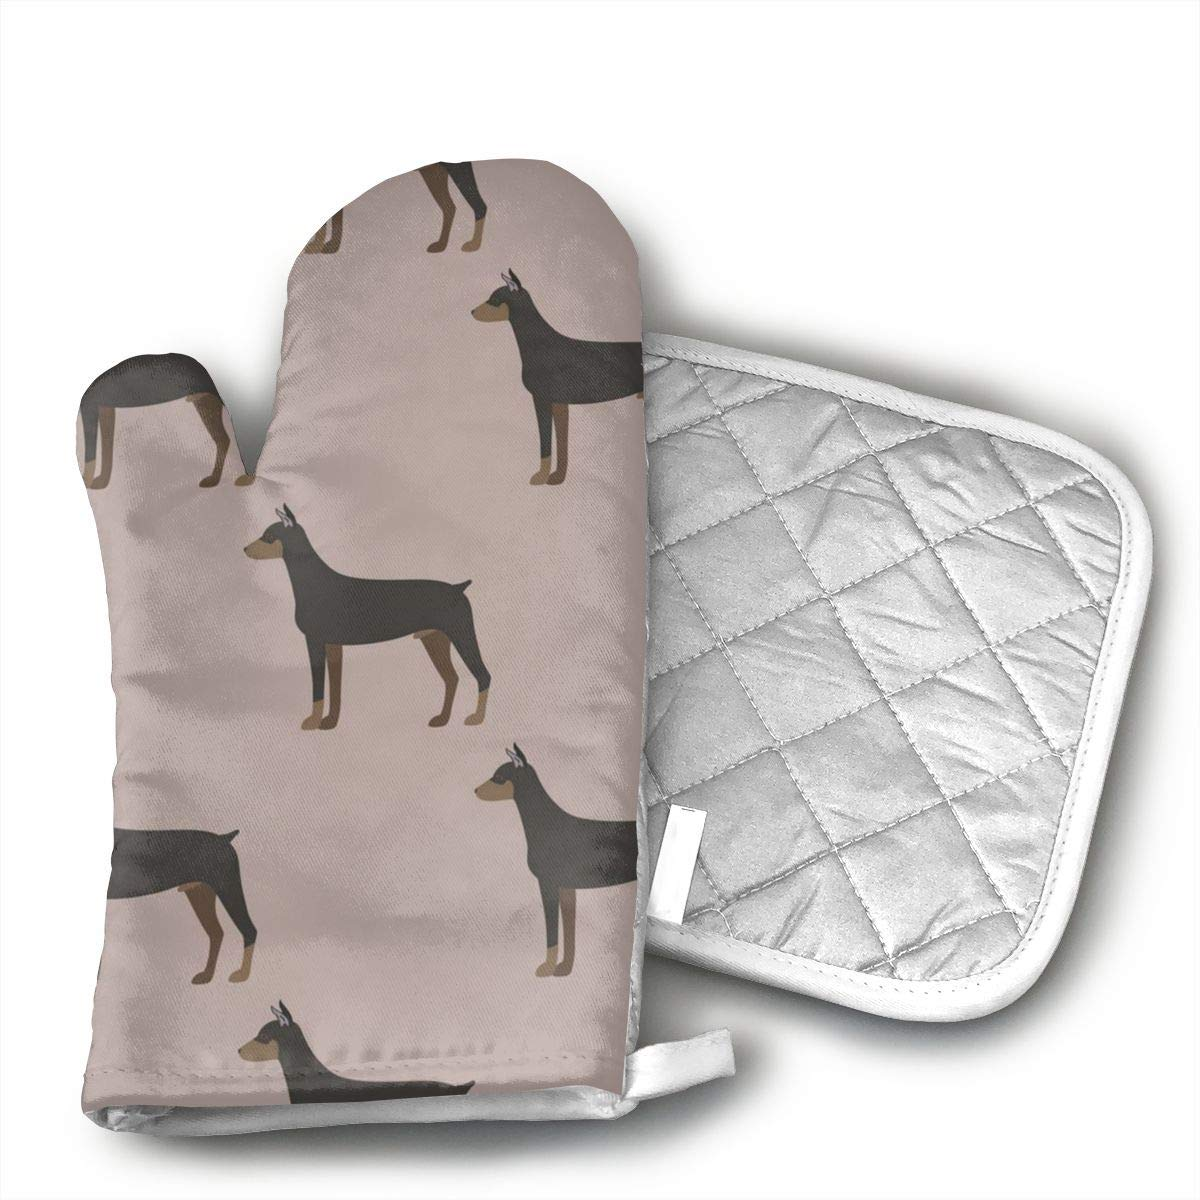 Wiqo9 Cartoon Doberman Dog Oven Mitts and Pot Holders Kitchen Mitten Cooking Gloves,Cooking, Baking, BBQ.